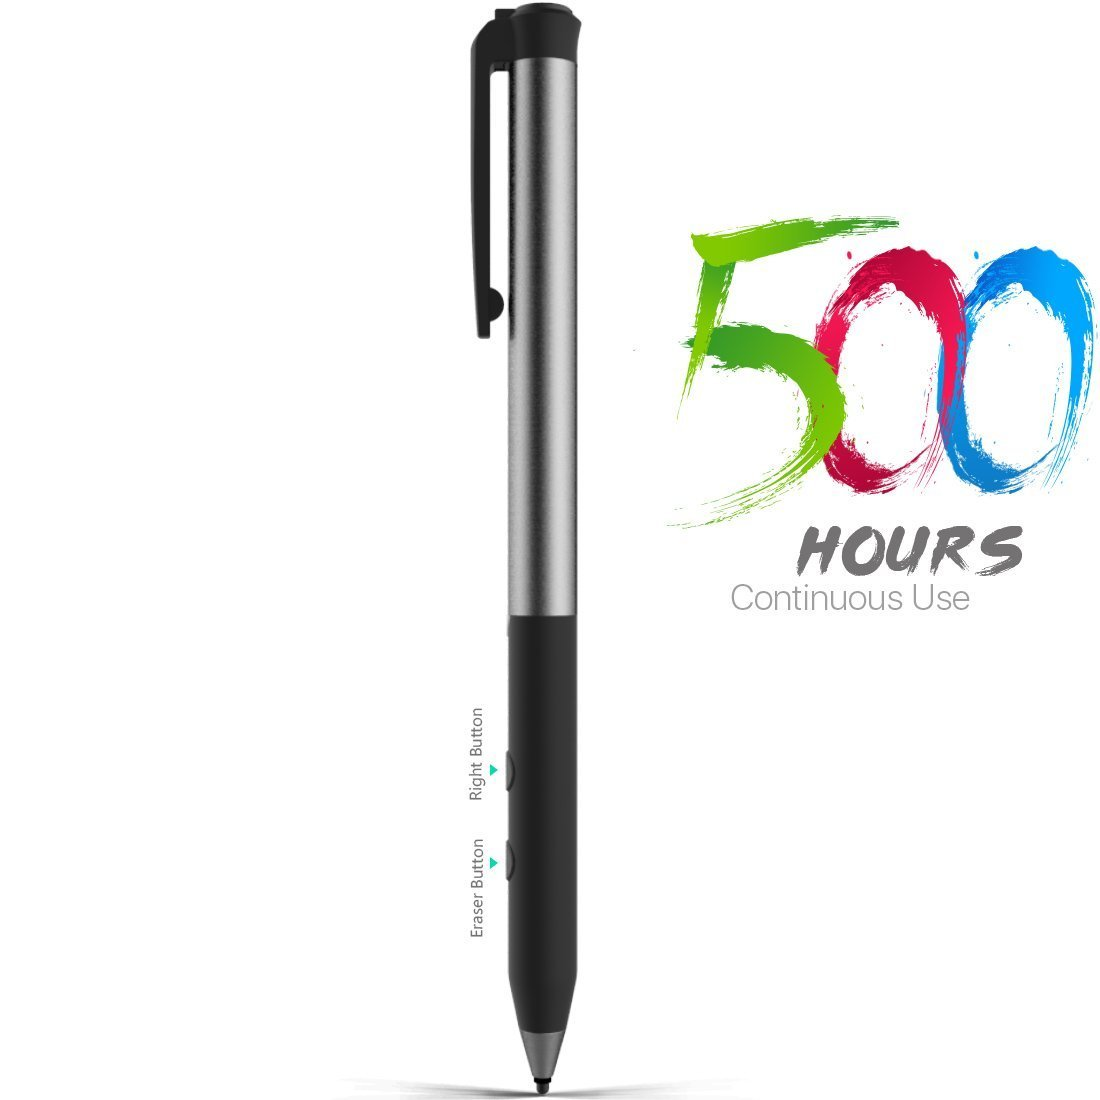 Microsoft Certified Surface Pen, Stylus Pens Supporting 500-Hour Playing Time 180-Day Stand-by Built-in Battery Active Styli with 4096 Levels of Pressure Sensitivity Touchscreen Pen for Surface Series